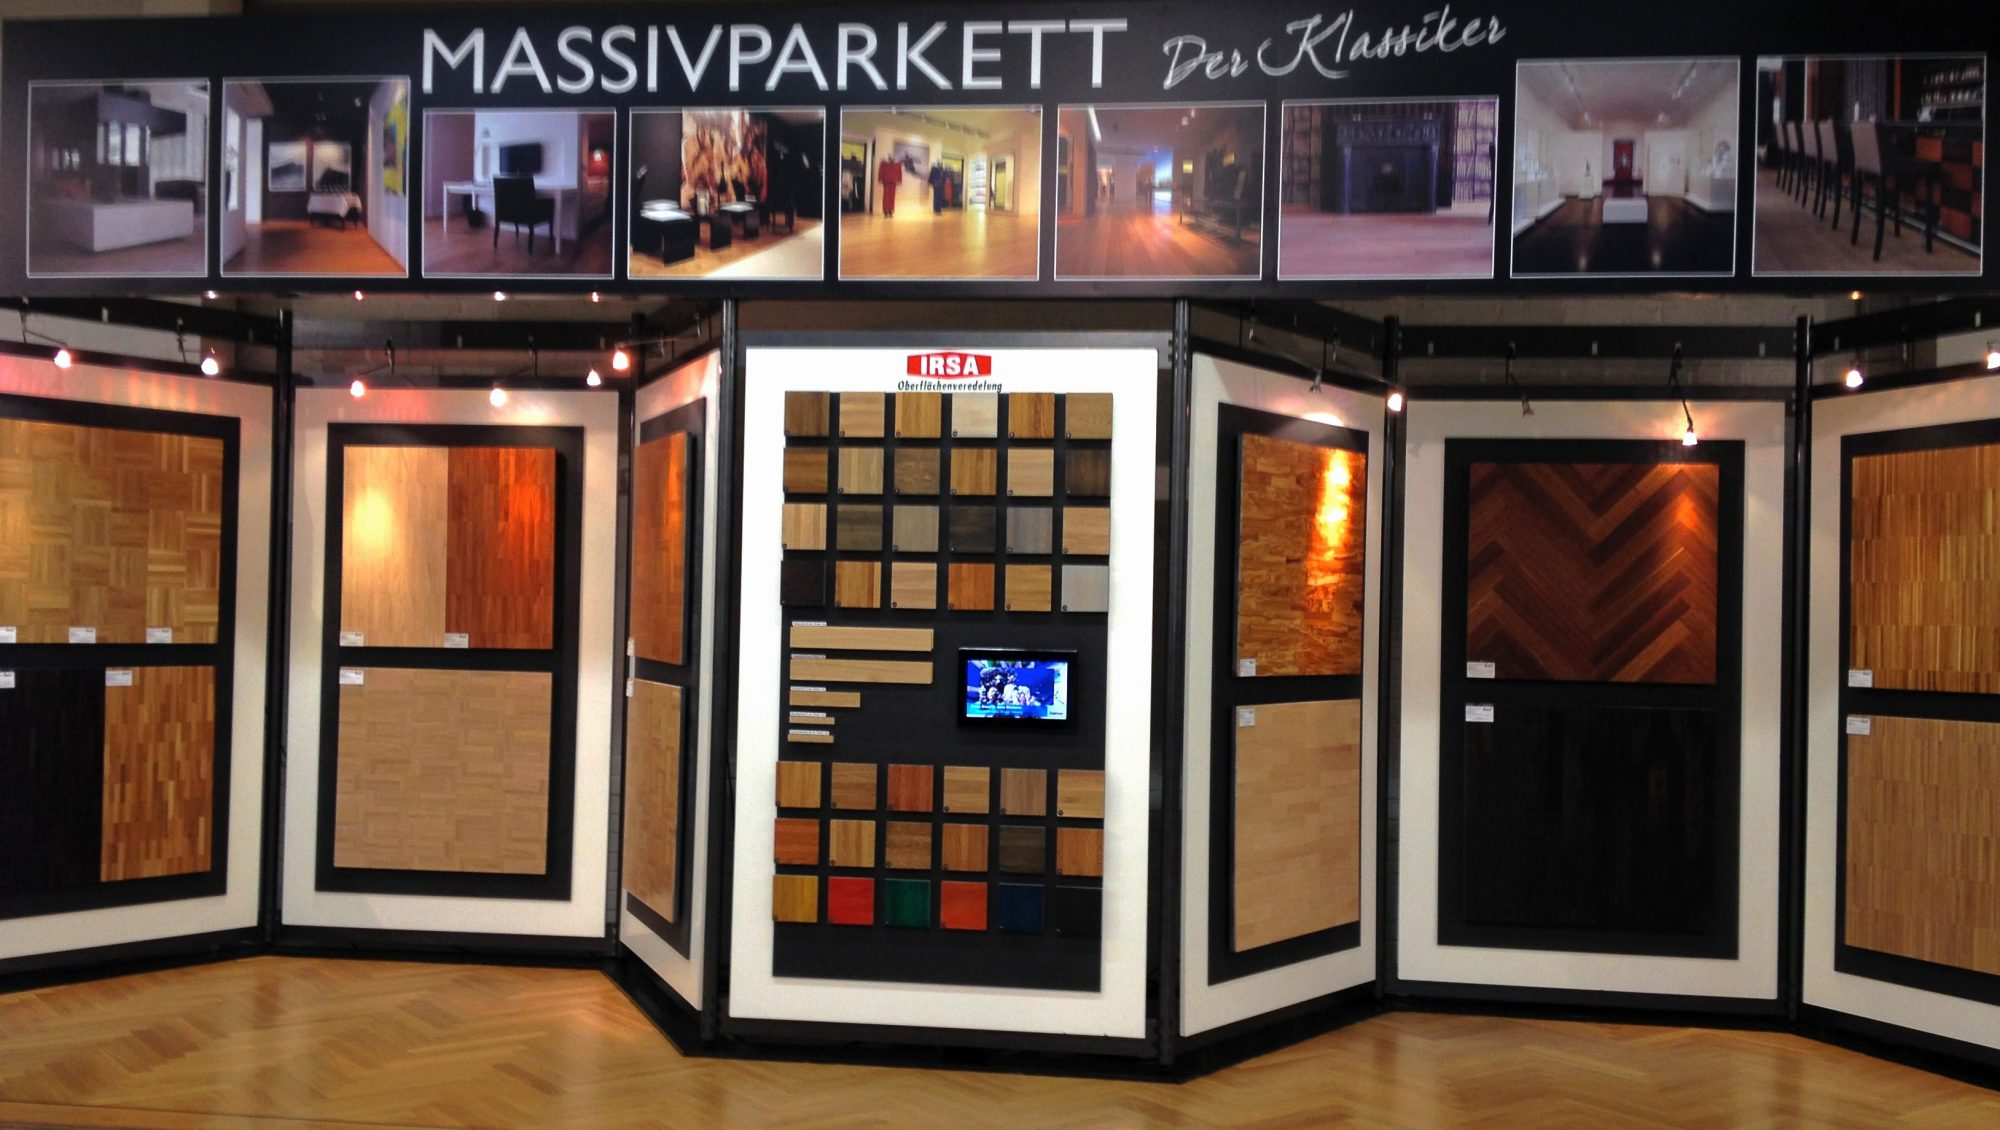 Massivparkett Studio